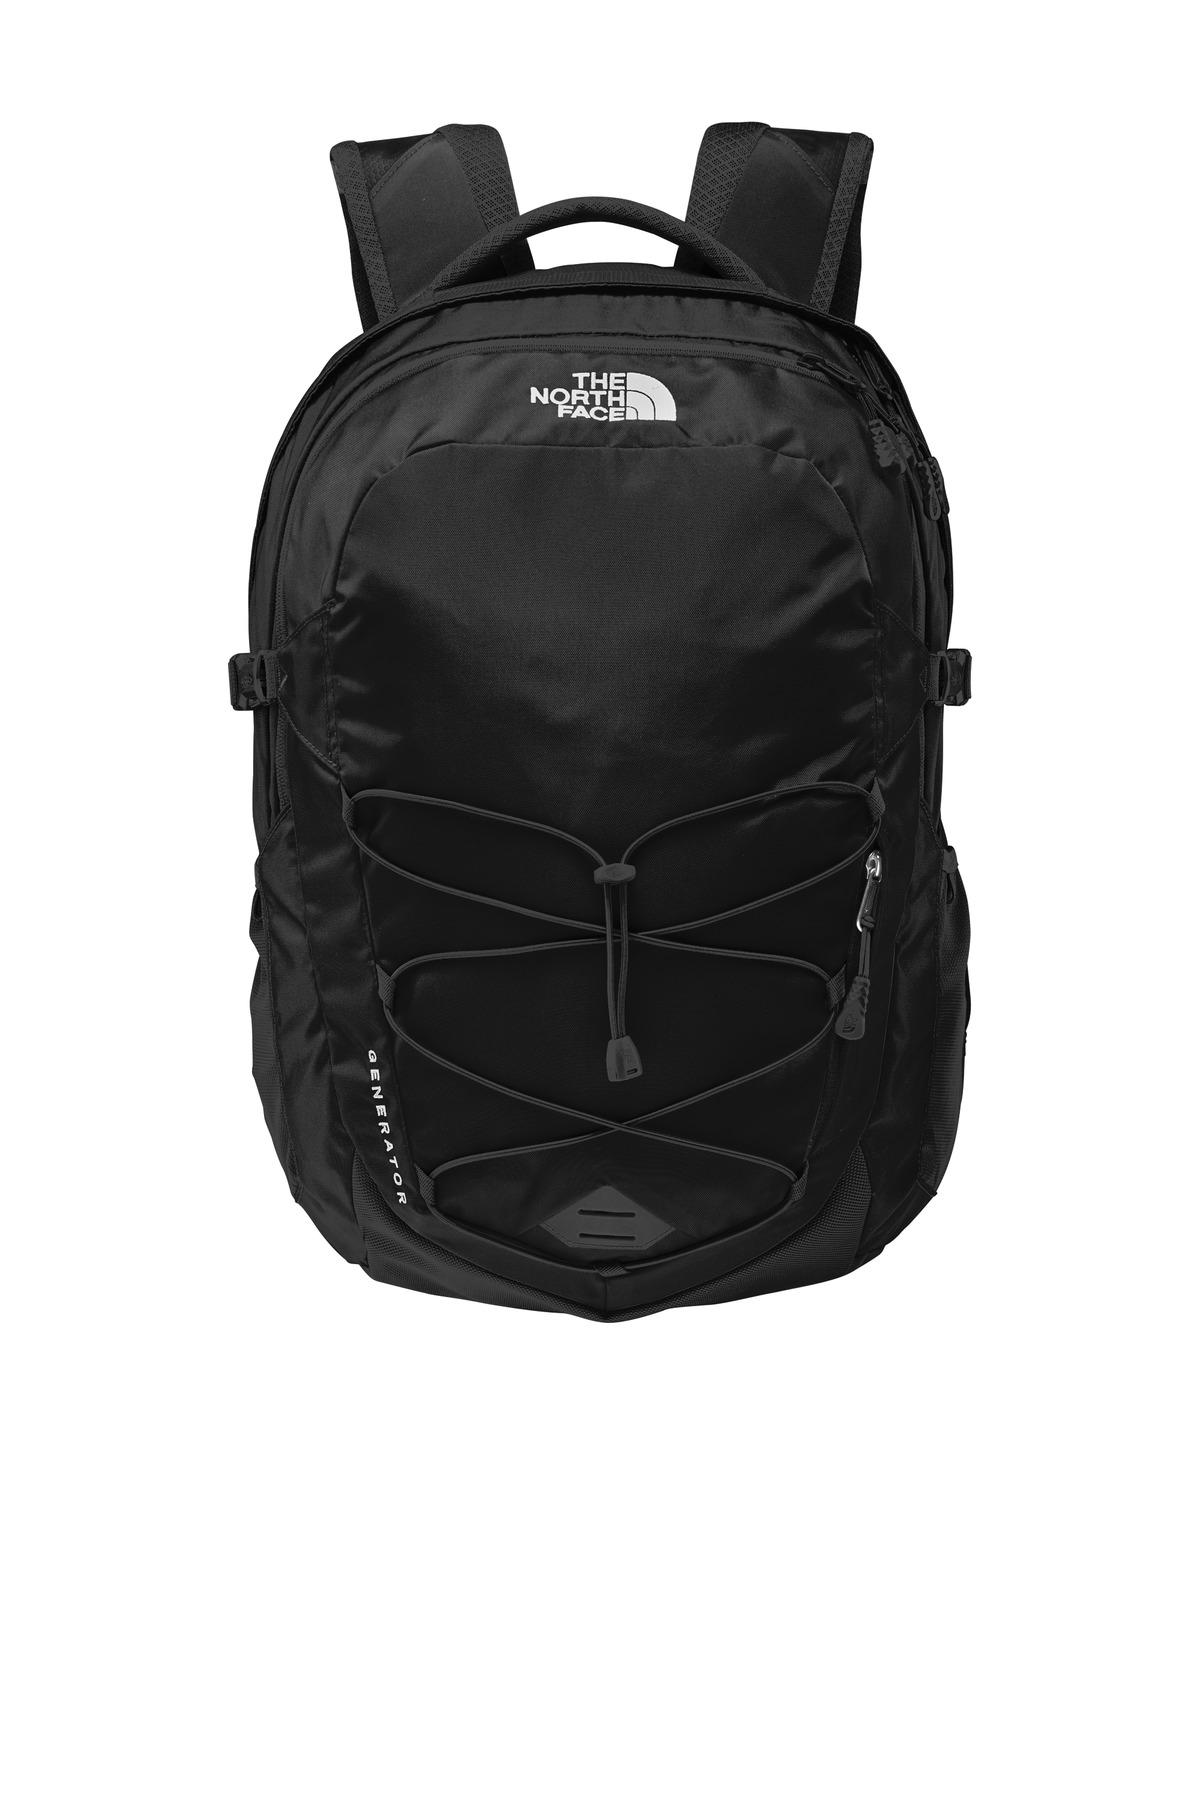 The North Face  ®  Generator Backpack. NF0A3KX5 - TNF Black